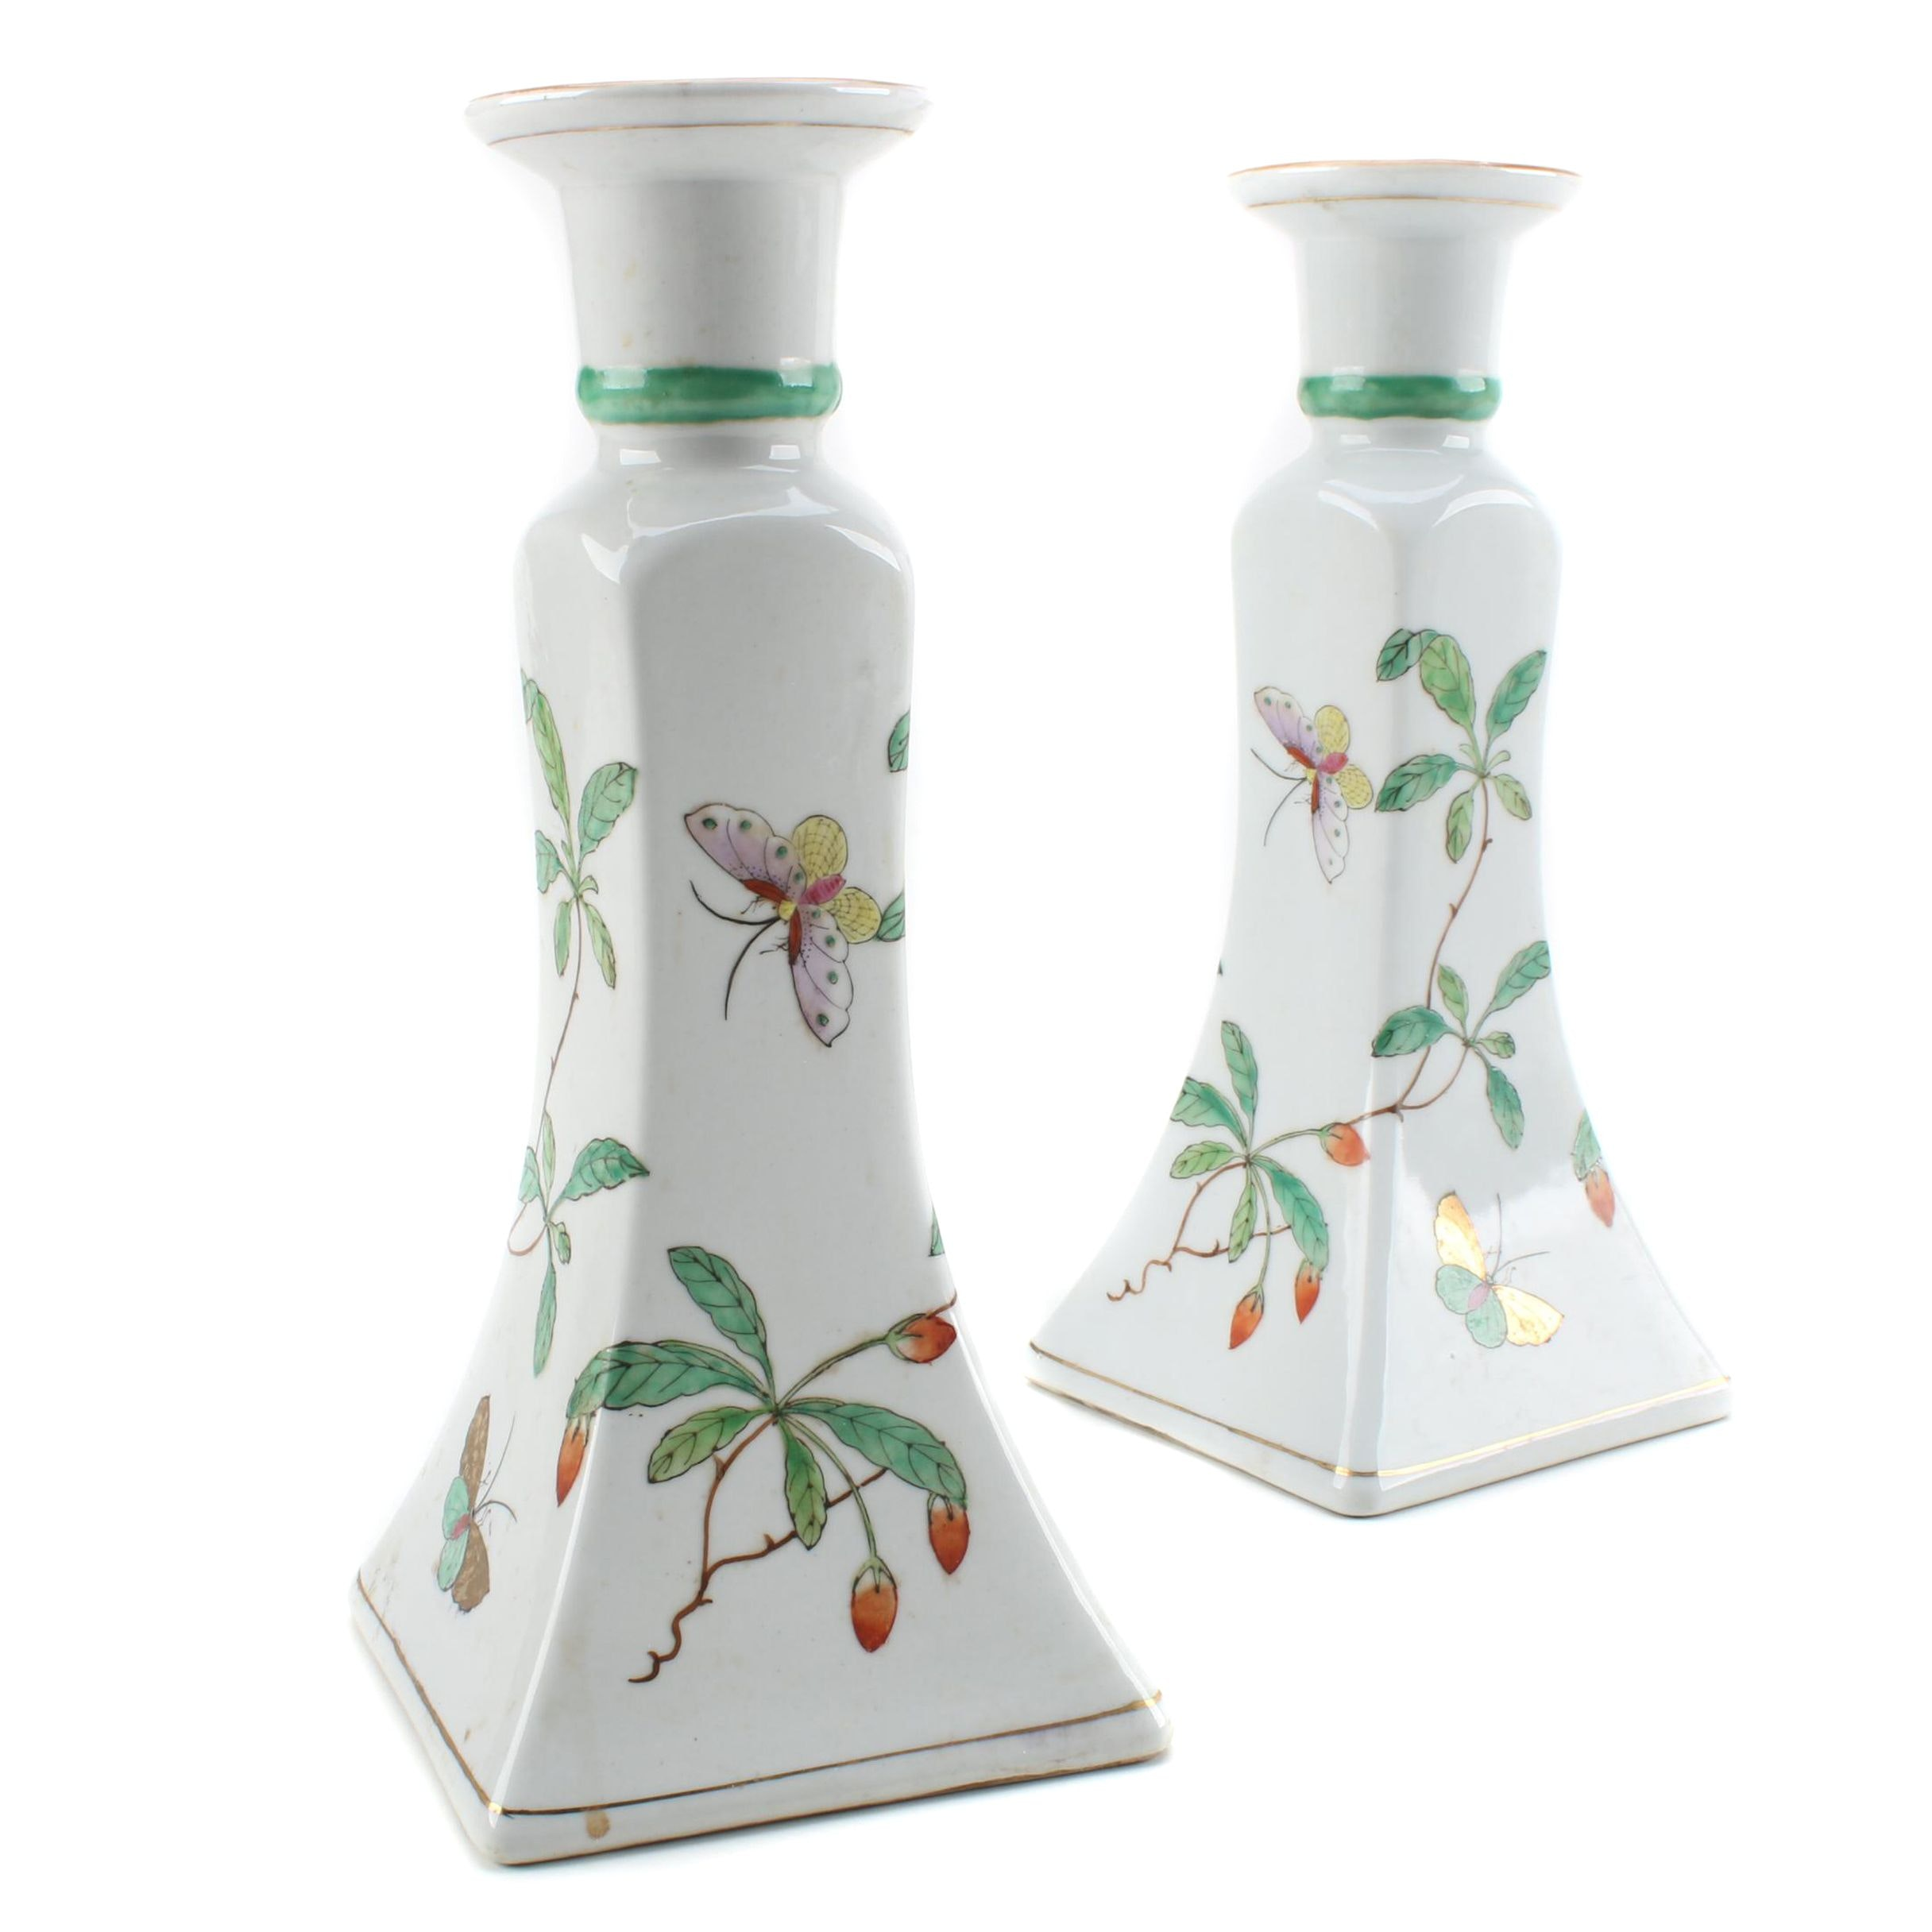 Chinese Porcelain Candlestick Holders